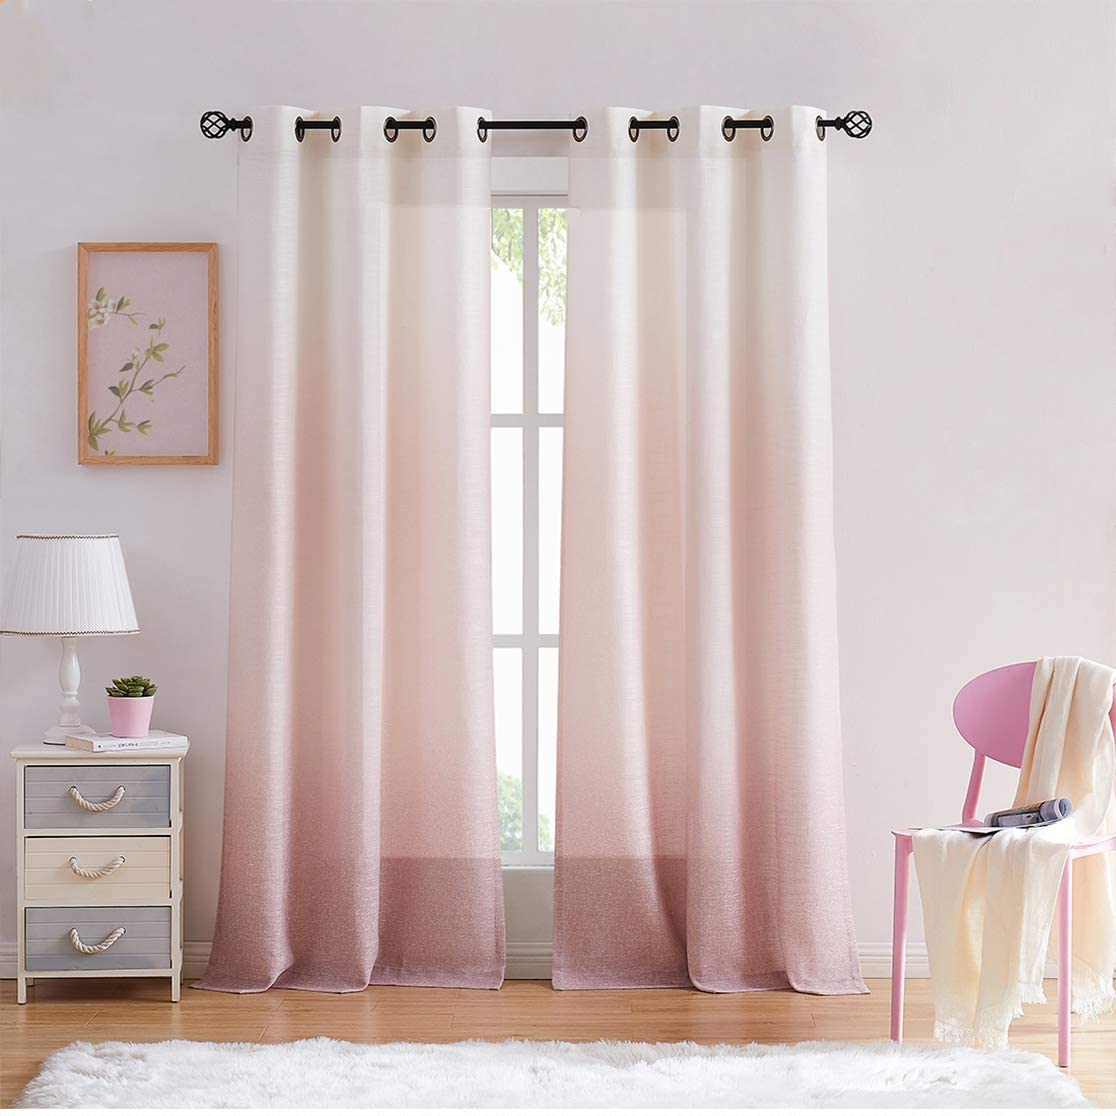 "Central Park Ombre Window Curtain Panel Linen Gradient Print on Rayon Blend Fabric Drapery Treatments for Living Room/Bedroom, Cream White to Pink Dust Rose, 40"" x 84"", Set of 2"